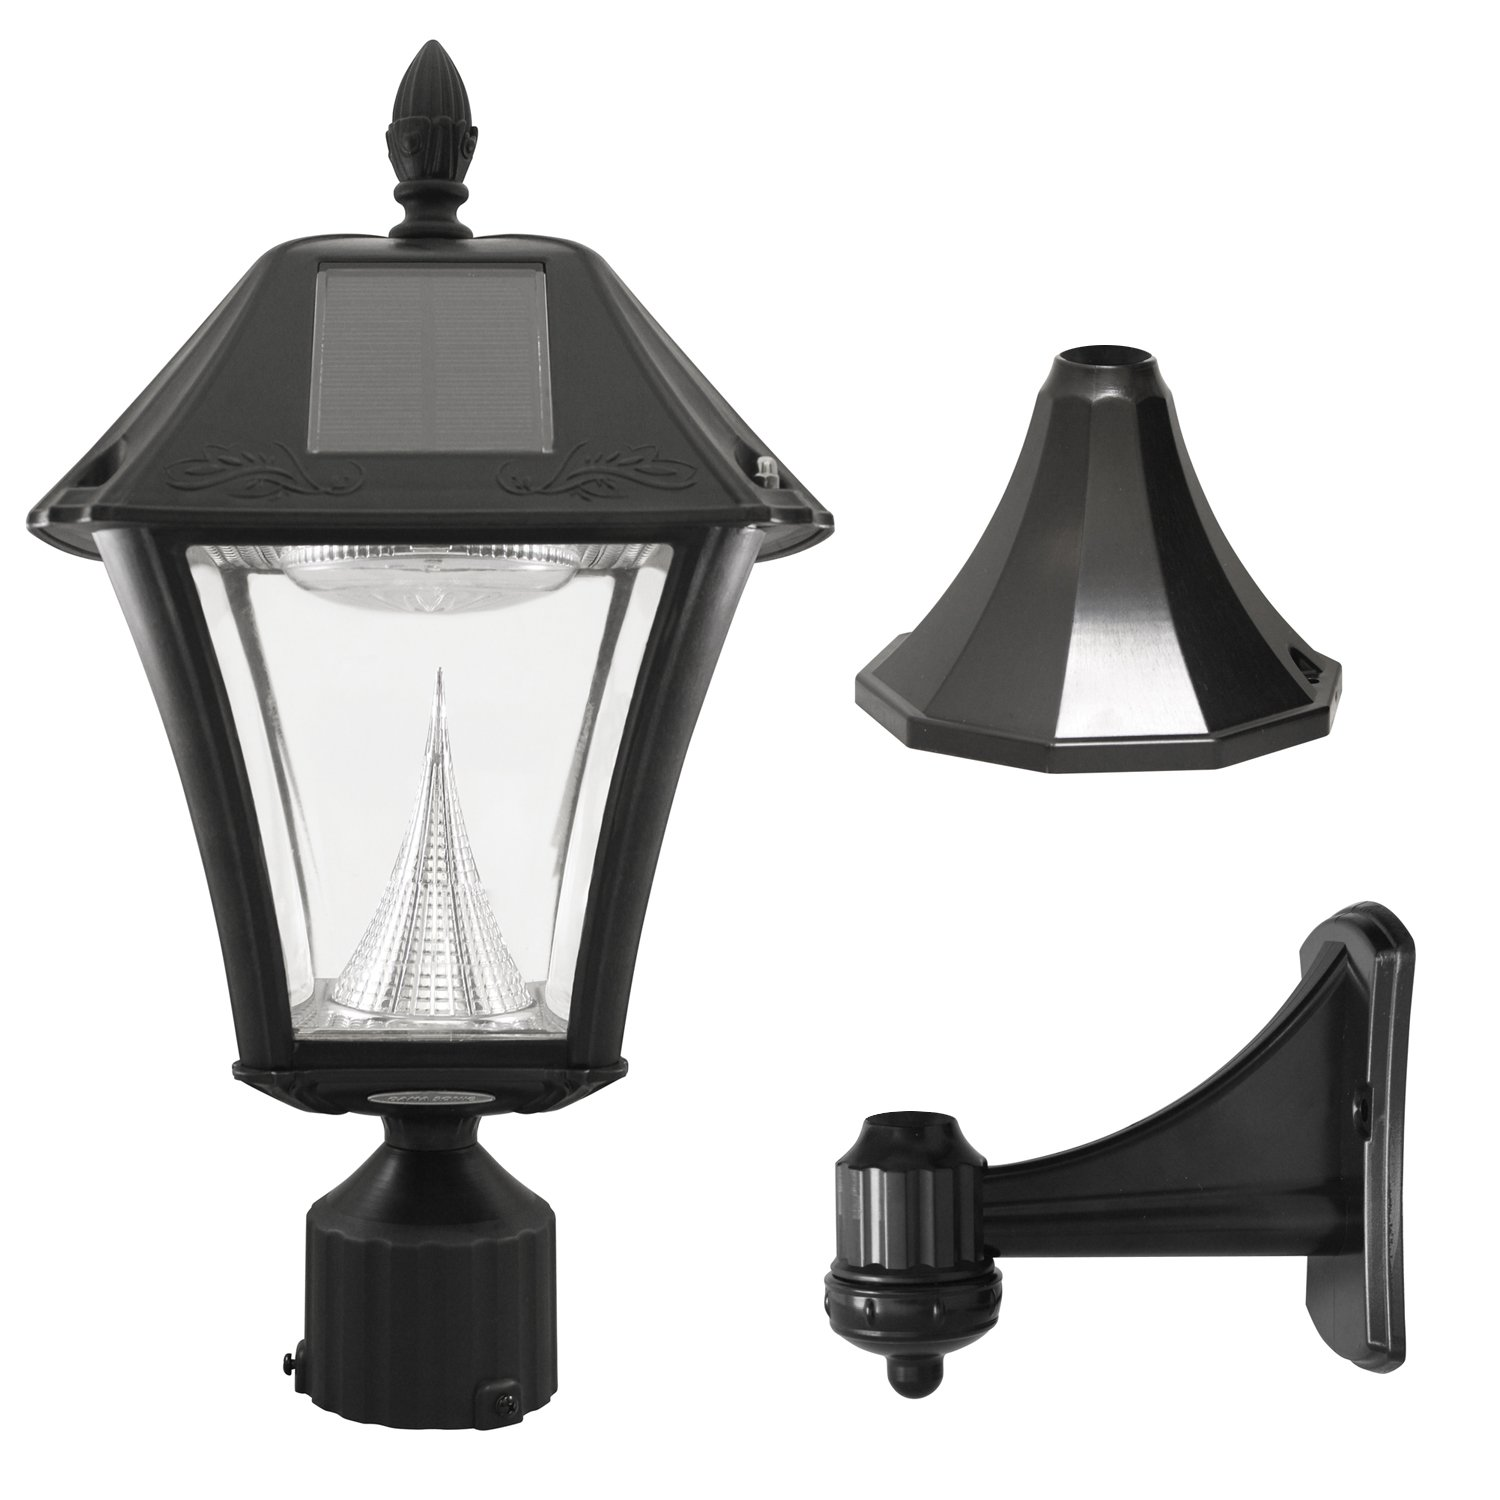 Gama Sonic GS 105FPW BW Baytown II Lamp Outdoor Solar Light Pole Pier Wall Mount Kits Bright White LED Black